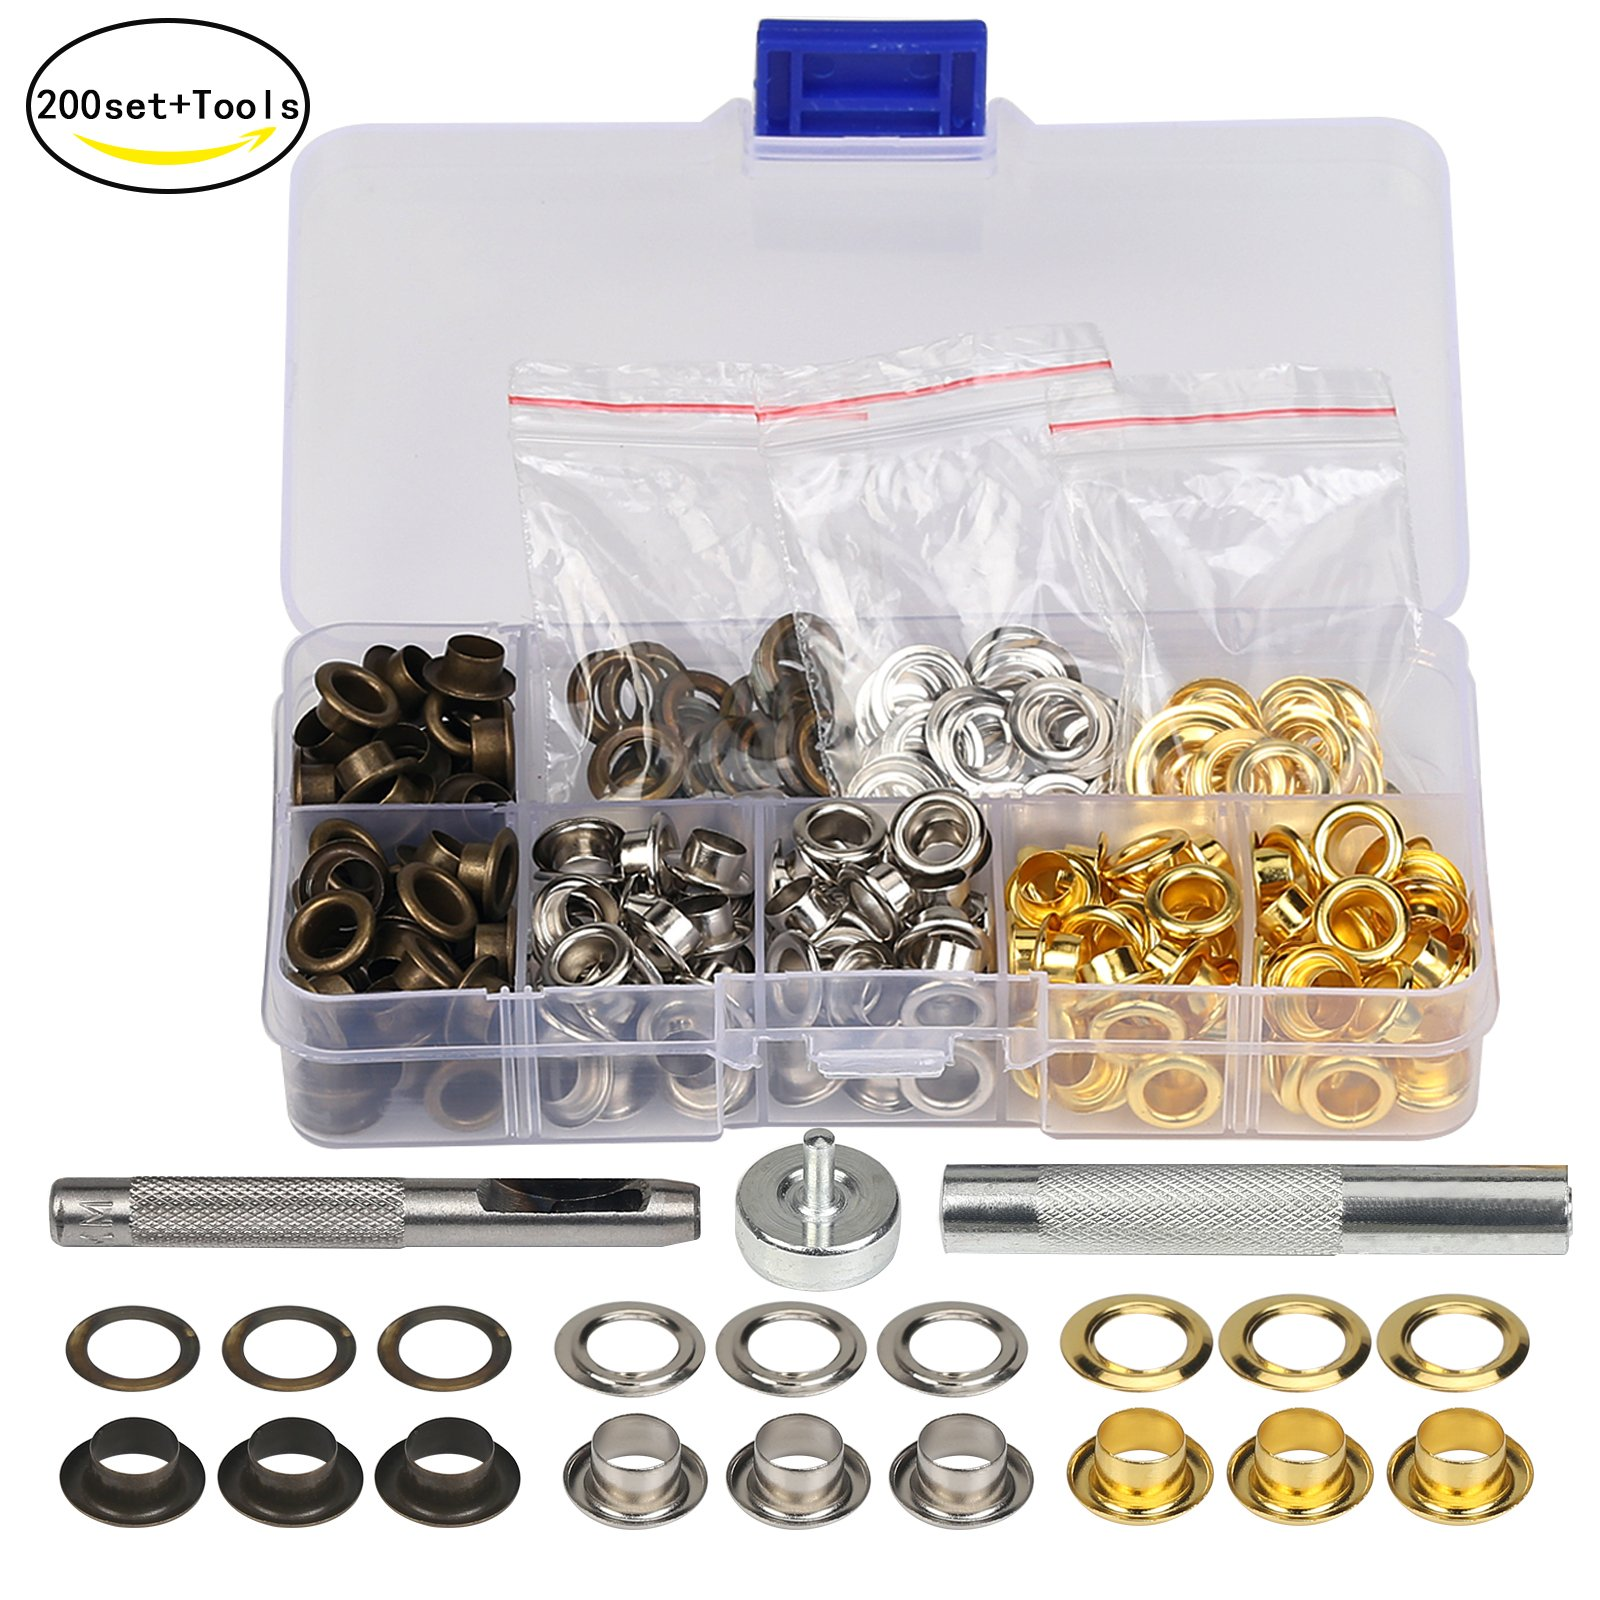 C.S 235-00 Osborne /& Co Hobbiest Grommet Setting Kit : Midget Grommet Setting Die-Size 00 G1-00 /& 72 QTY-BRASS Grommets /& Washers-Size 00